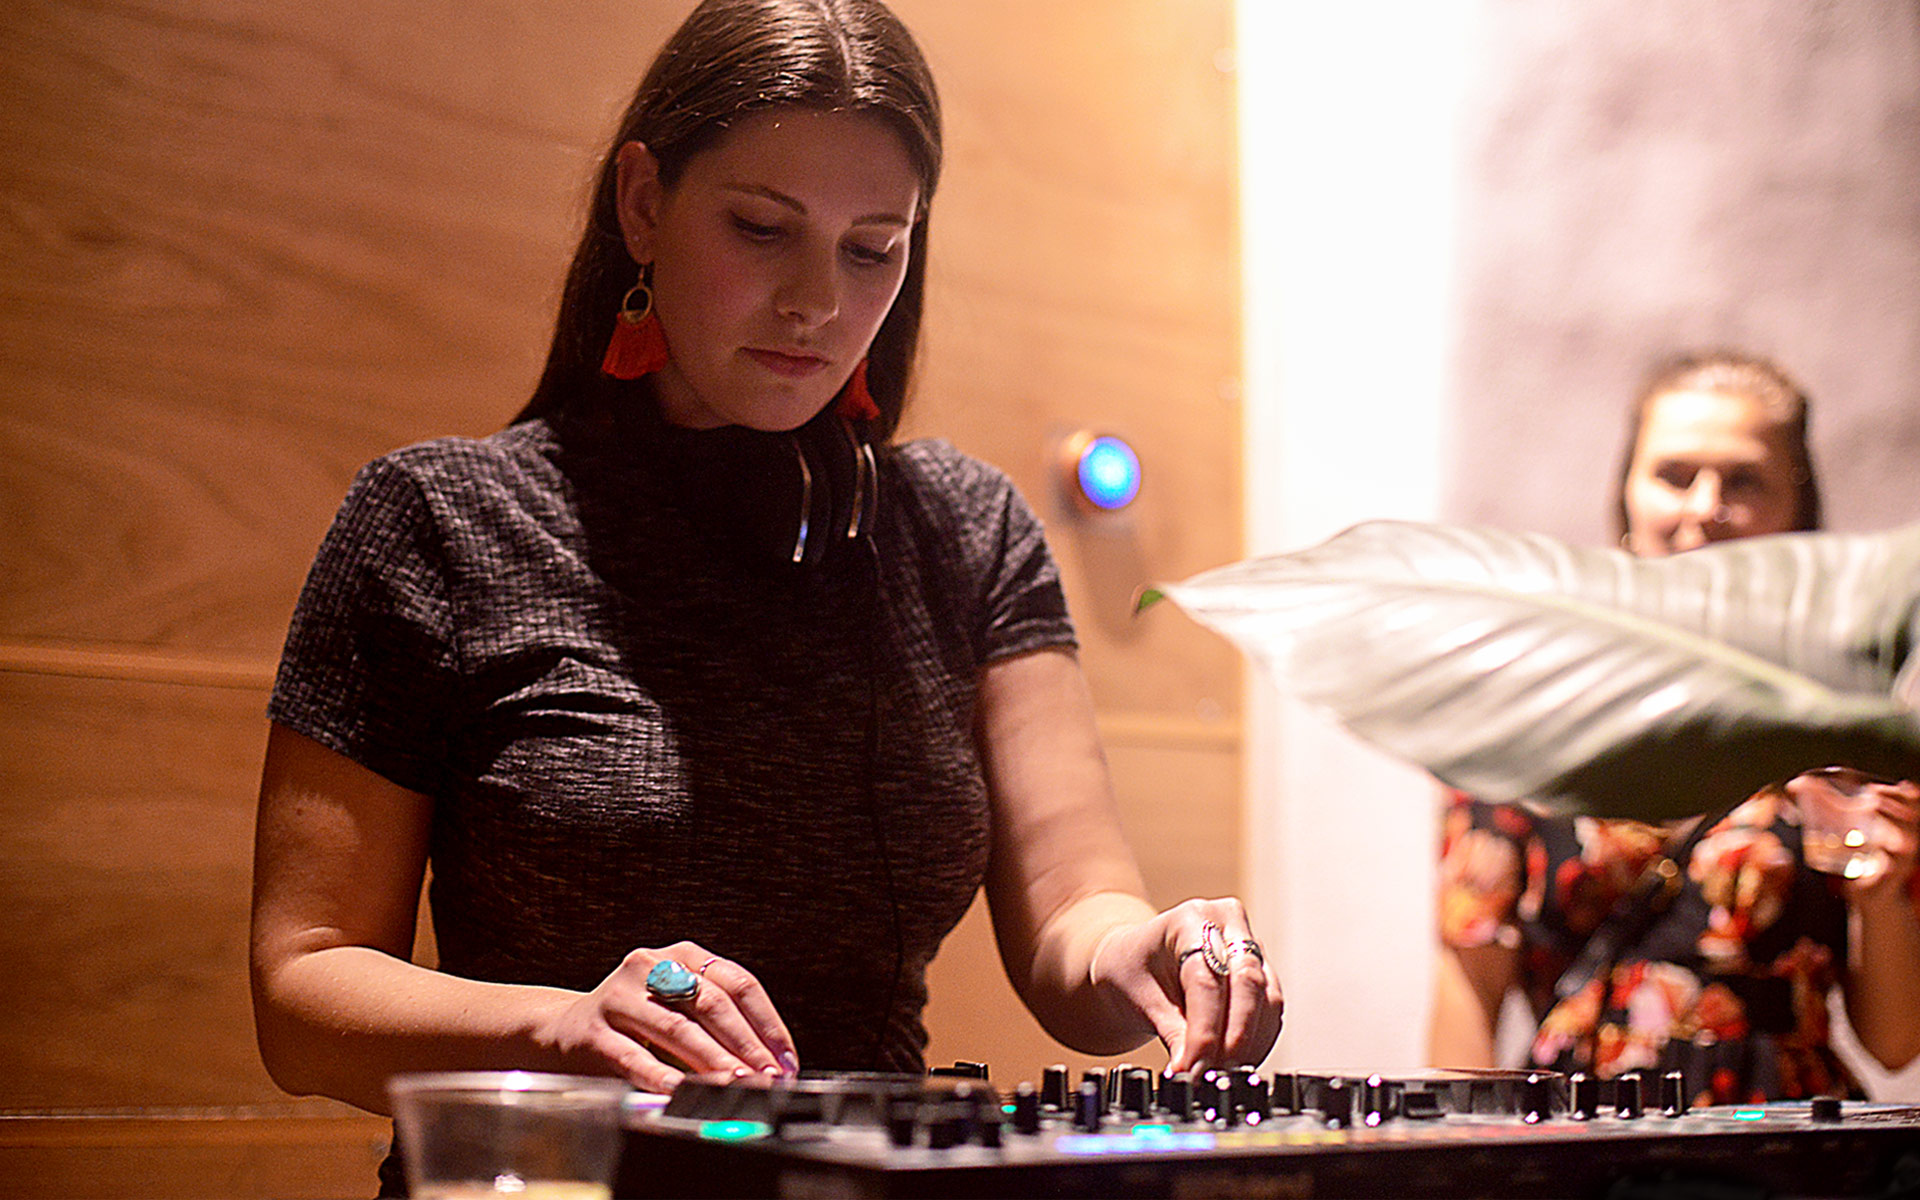 Academic Advisor by Day, DJ by Night: Freesia Towle's 5 Tips to Start DJing